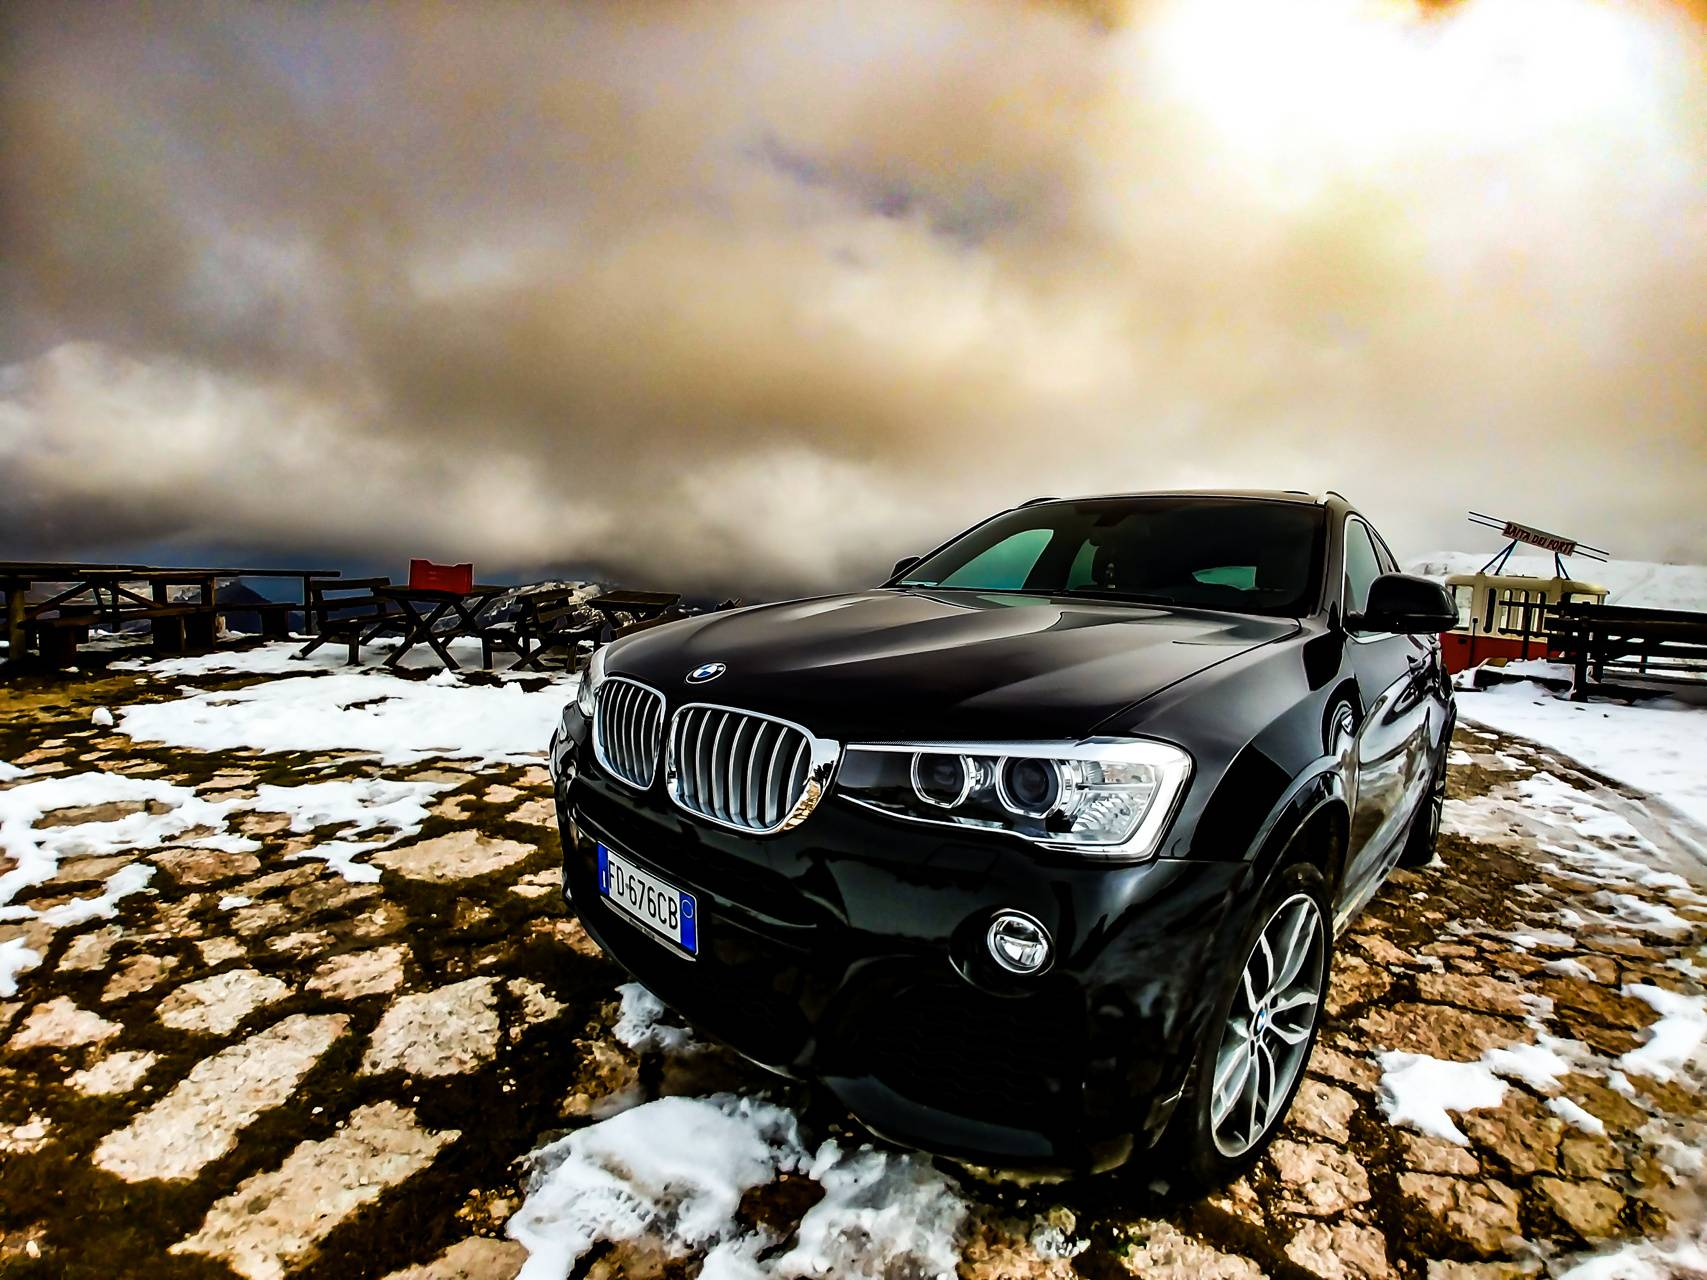 The mountain SUV